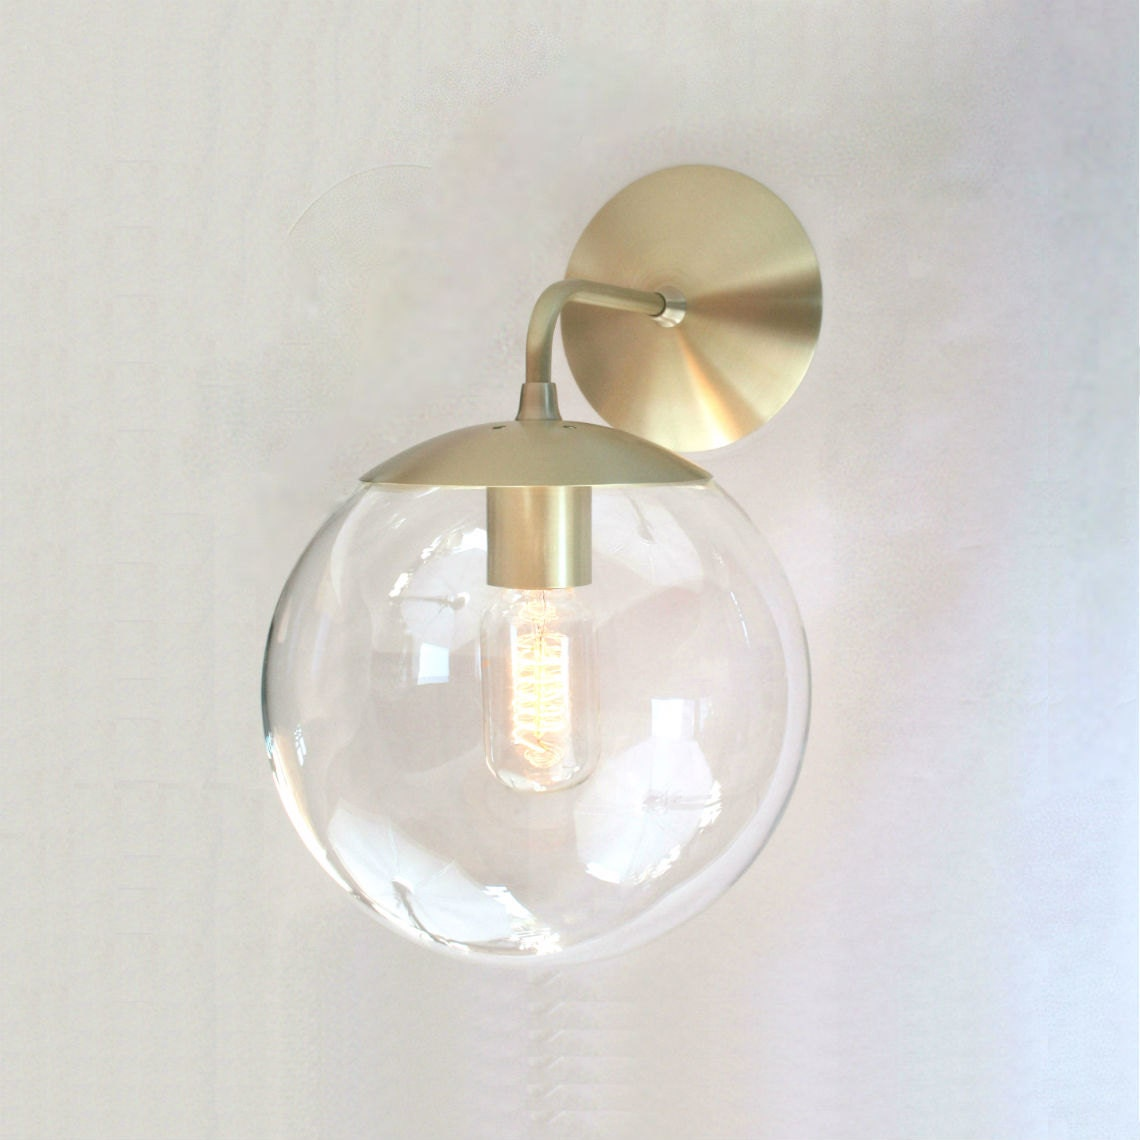 Modern Wall Sconce For Bathroom : Mid Century Modern Wall Sconce Light 8 Clear Glass Globe